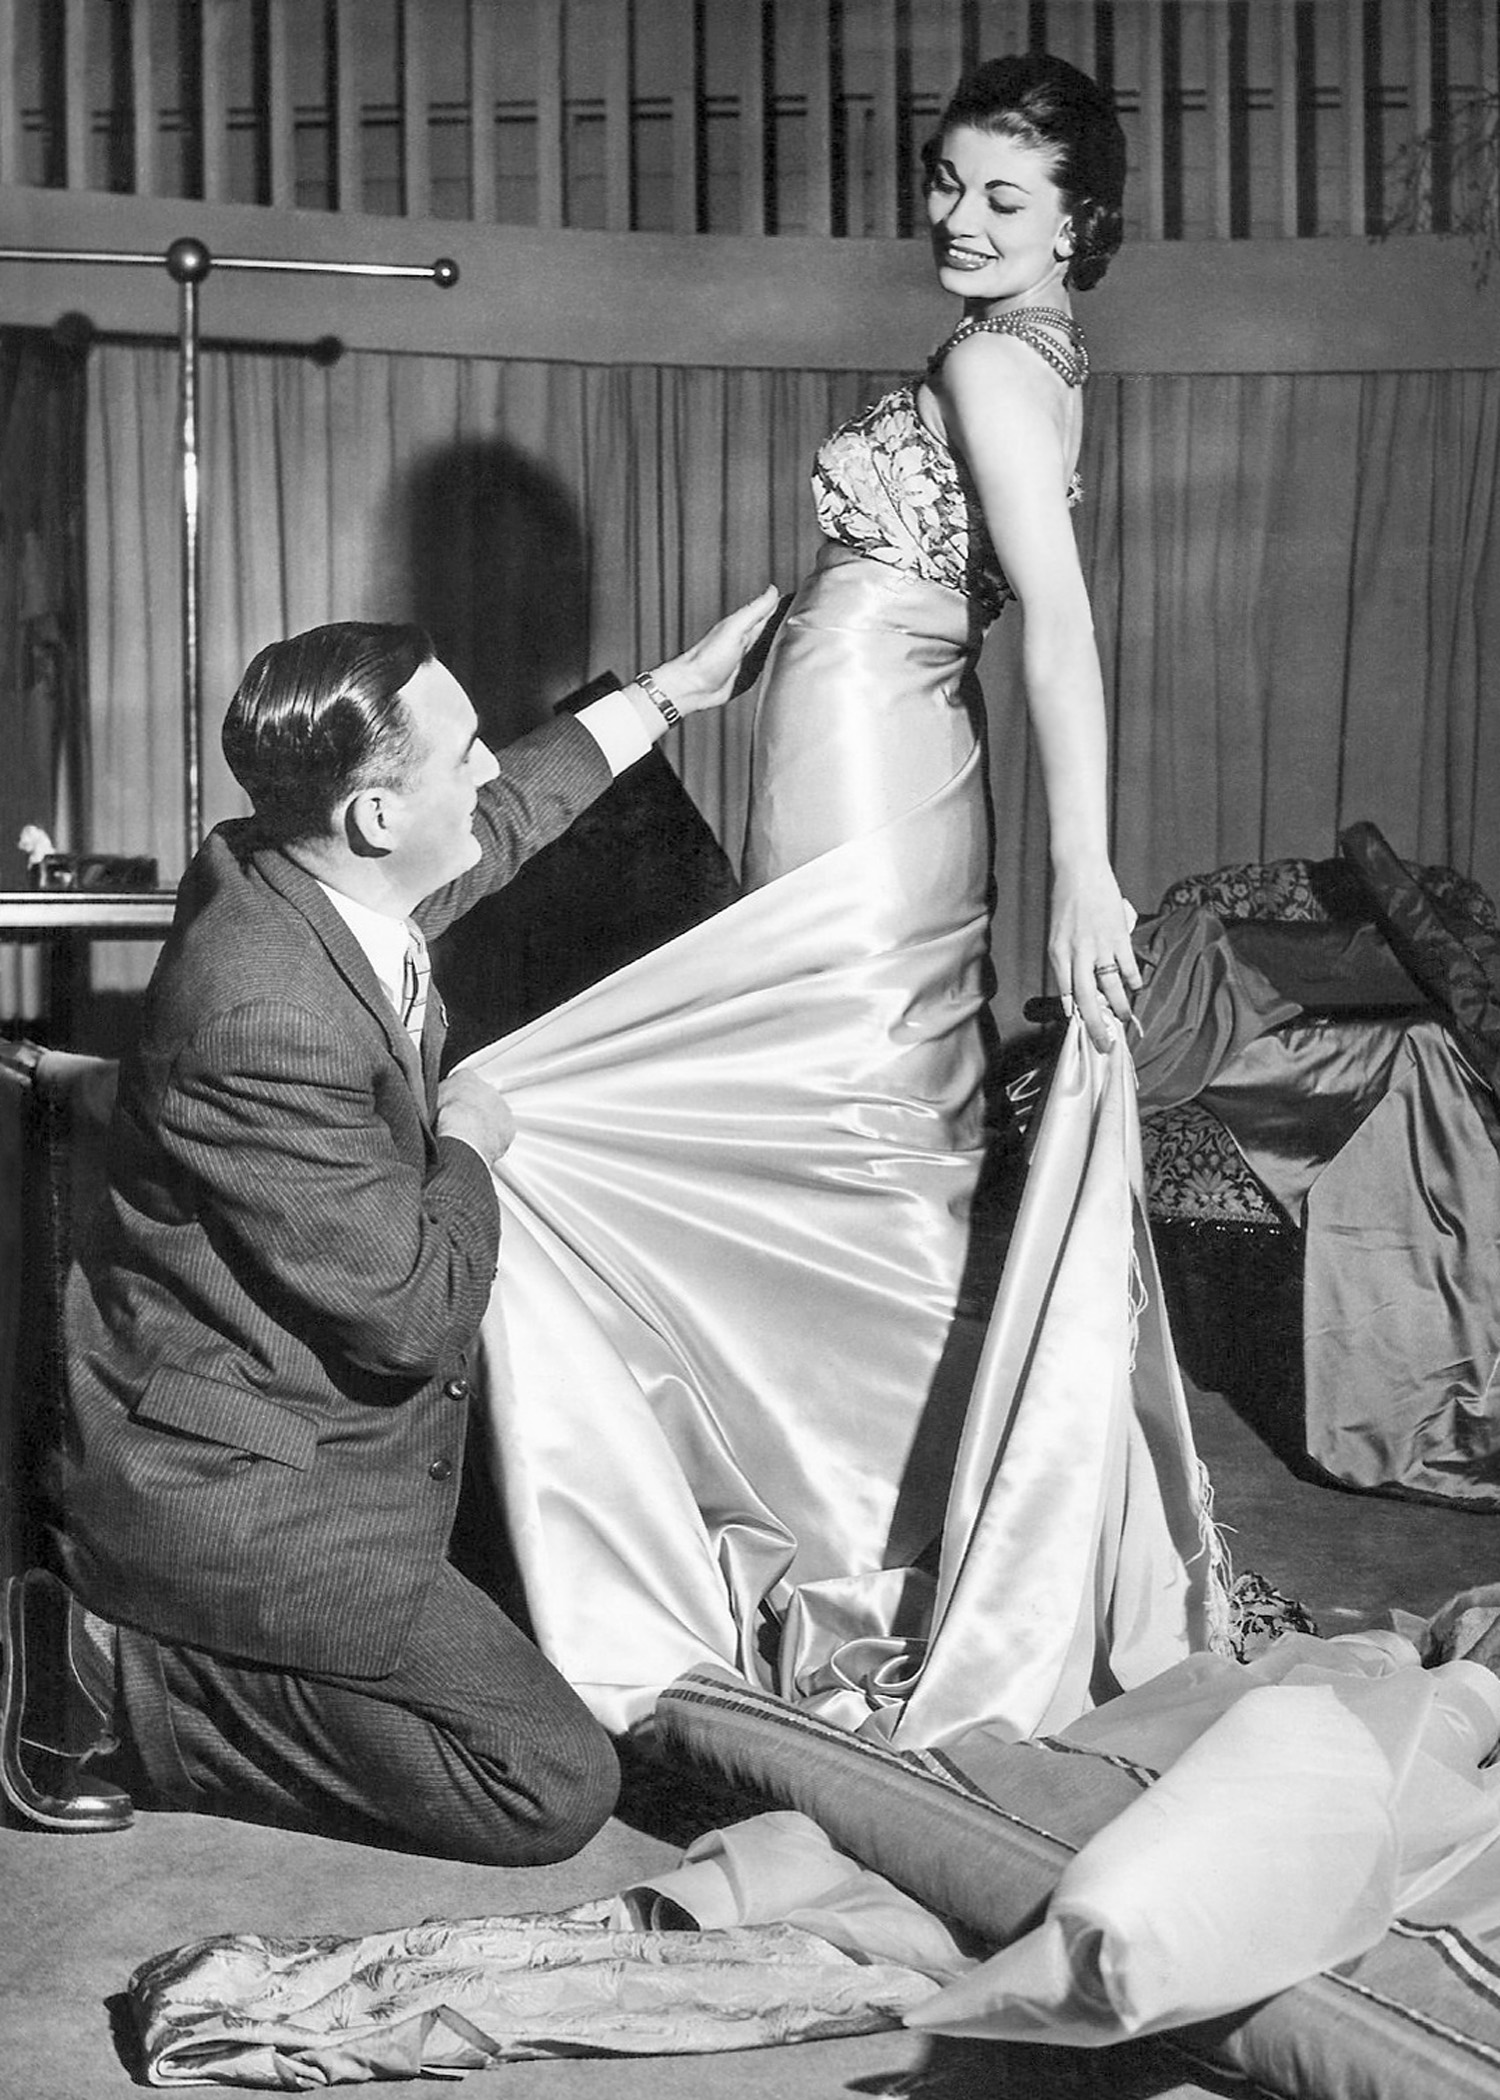 Van Roth stylist C.D.Venn & model Phil Purvis 1956